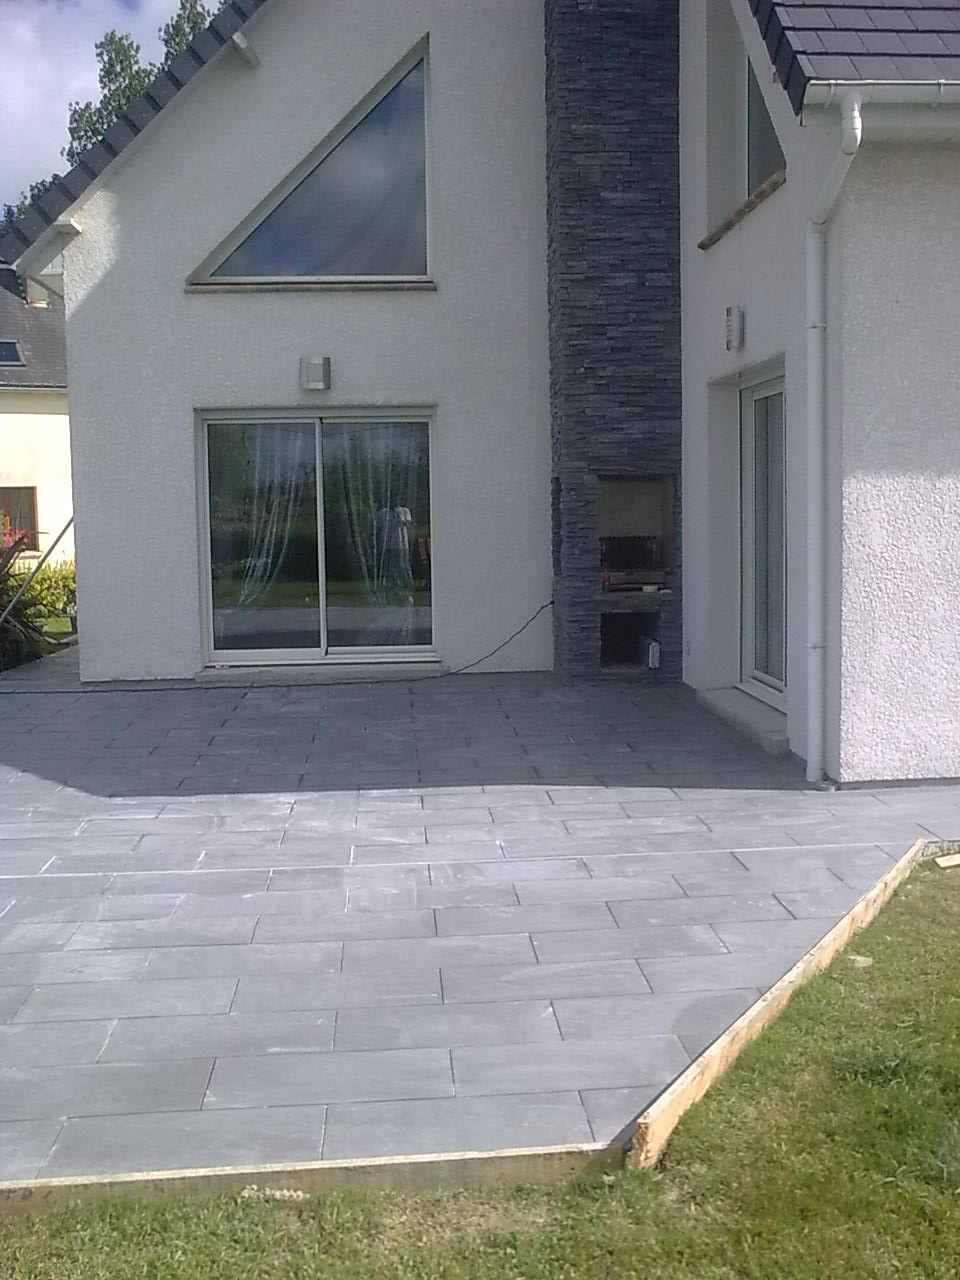 Video refaire joints carrelage devis gratuit travaux for Nettoyer carrelage exterieur encrasse